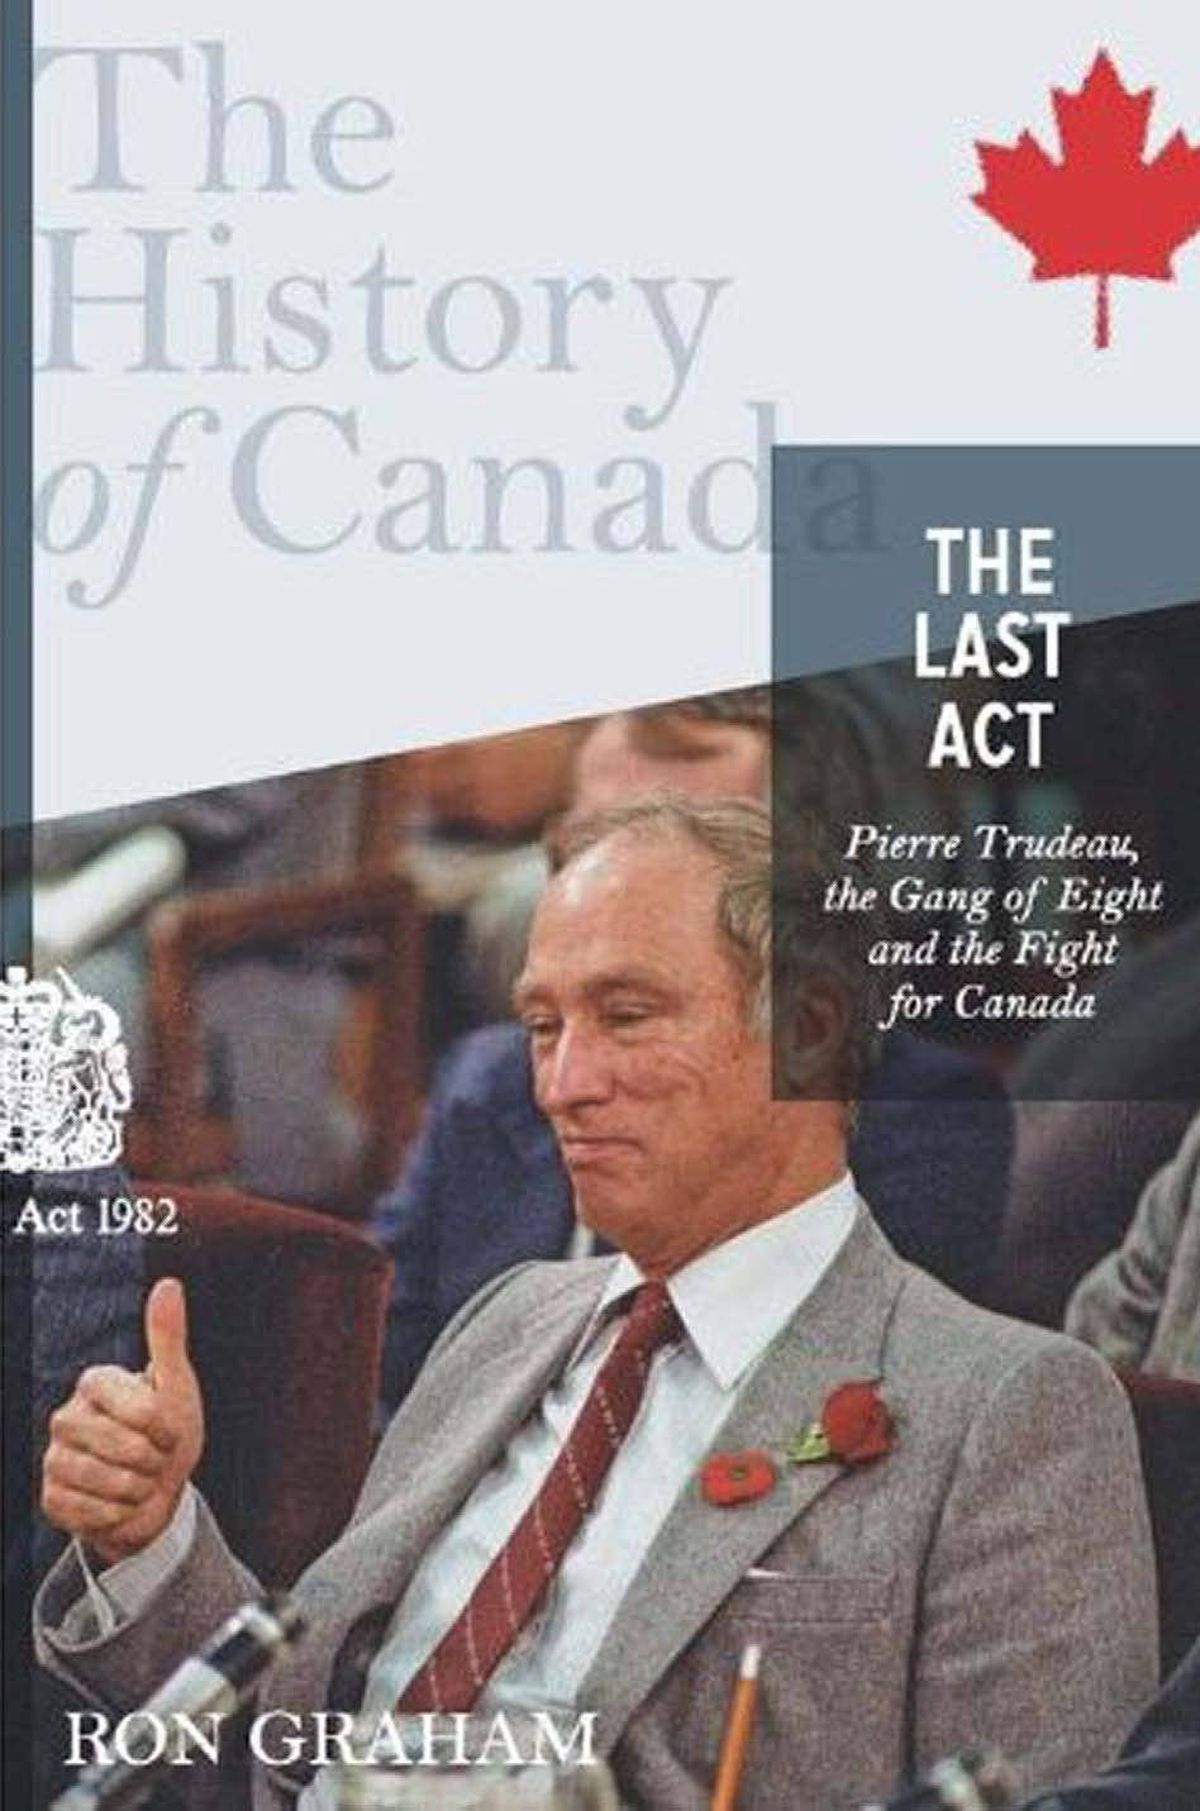 """THE LAST ACT Pierre Trudeau, the Gang of Eight, and the Fight for Canada By Ron Graham (Allen Lane Canada) This is a spirited and judicious account of Trudeau's heroic struggle to repatriate the Constitution, """"a pivotal moment in the evolution of the nation ... Canada's spiritual coming of age."""" Graham is an able chronicler of this epic tale of nation-building. He brings clarity and balance to a drama that has been cynically distorted by separatists and revisionists. – Andrew Cohen"""